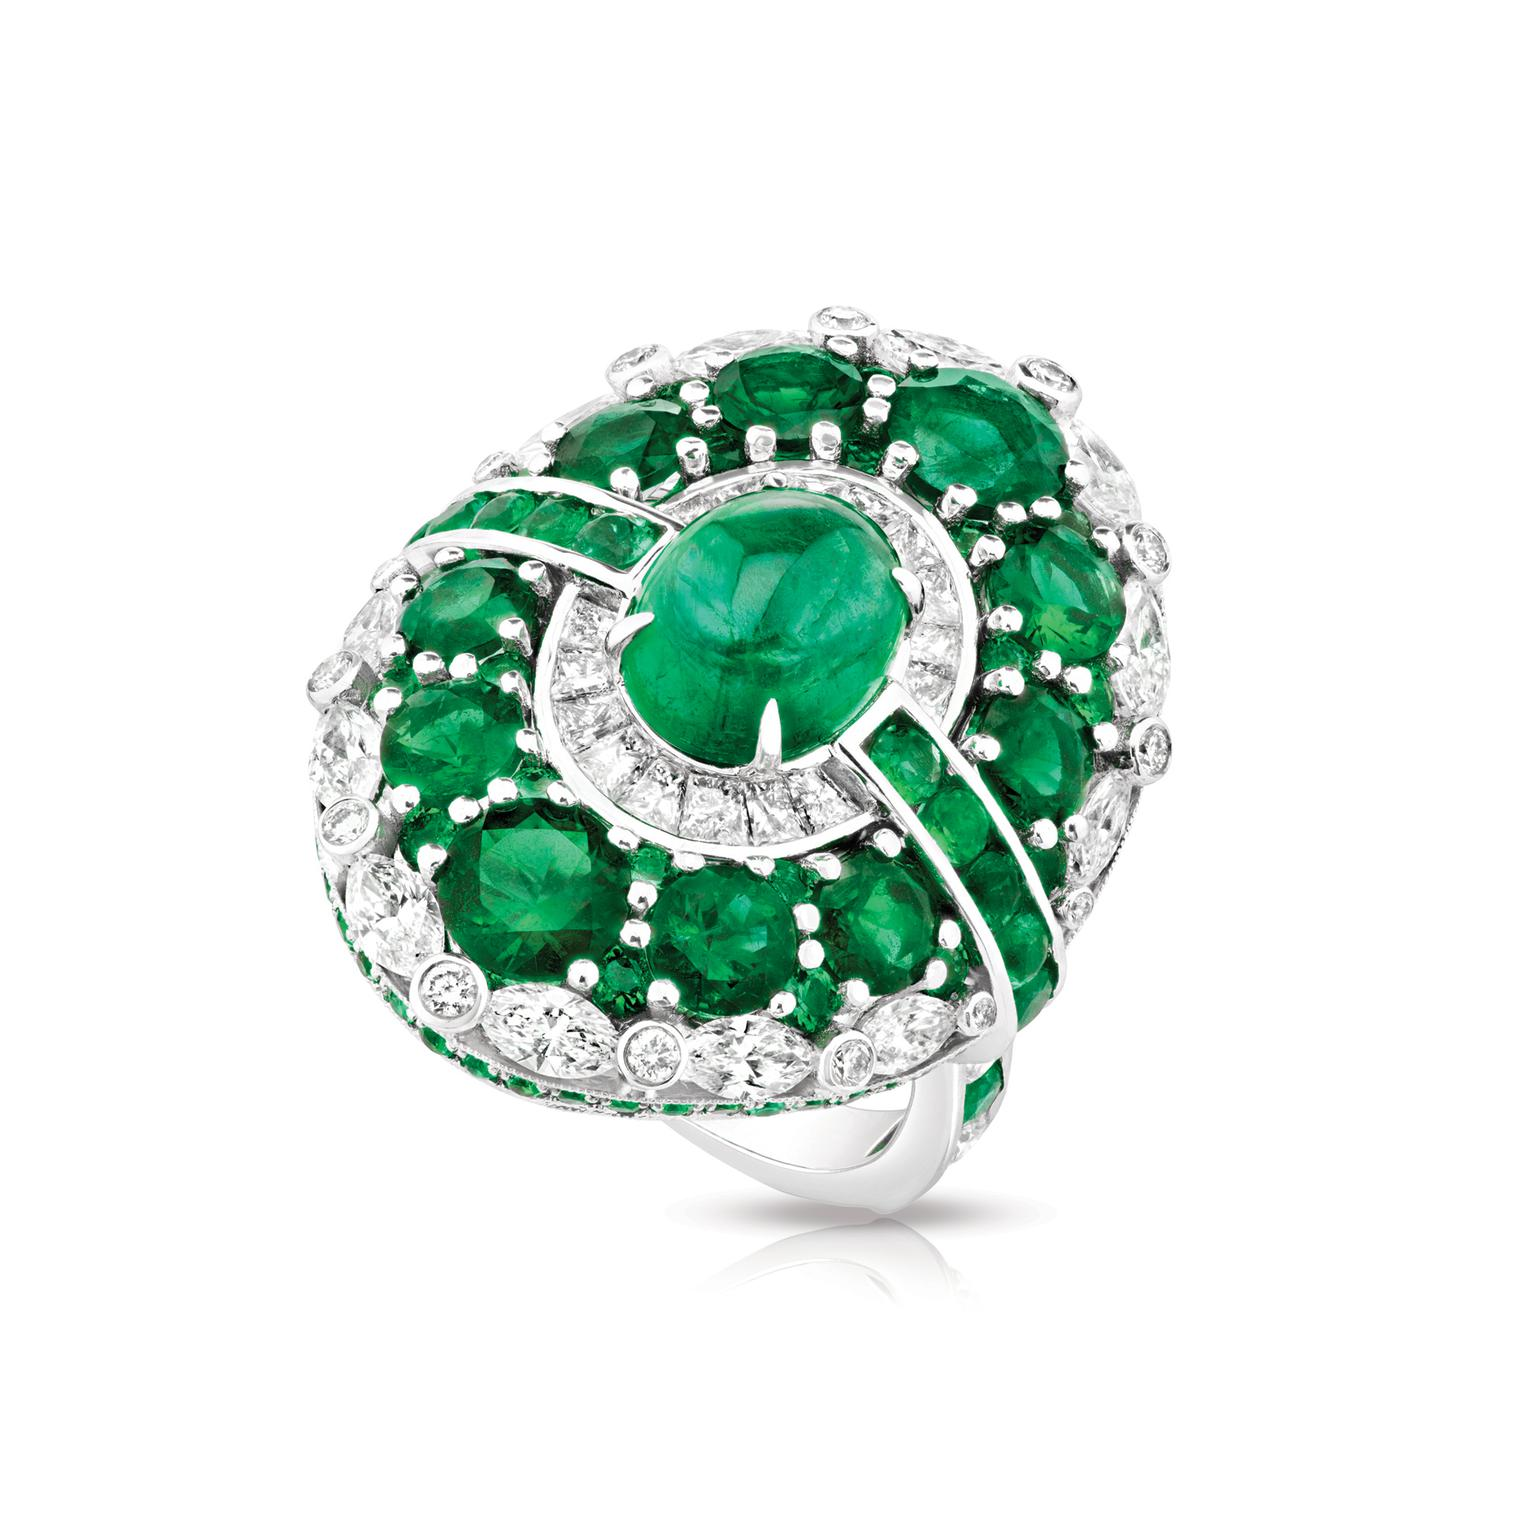 Fabergé Devotion Aurora emerald ring